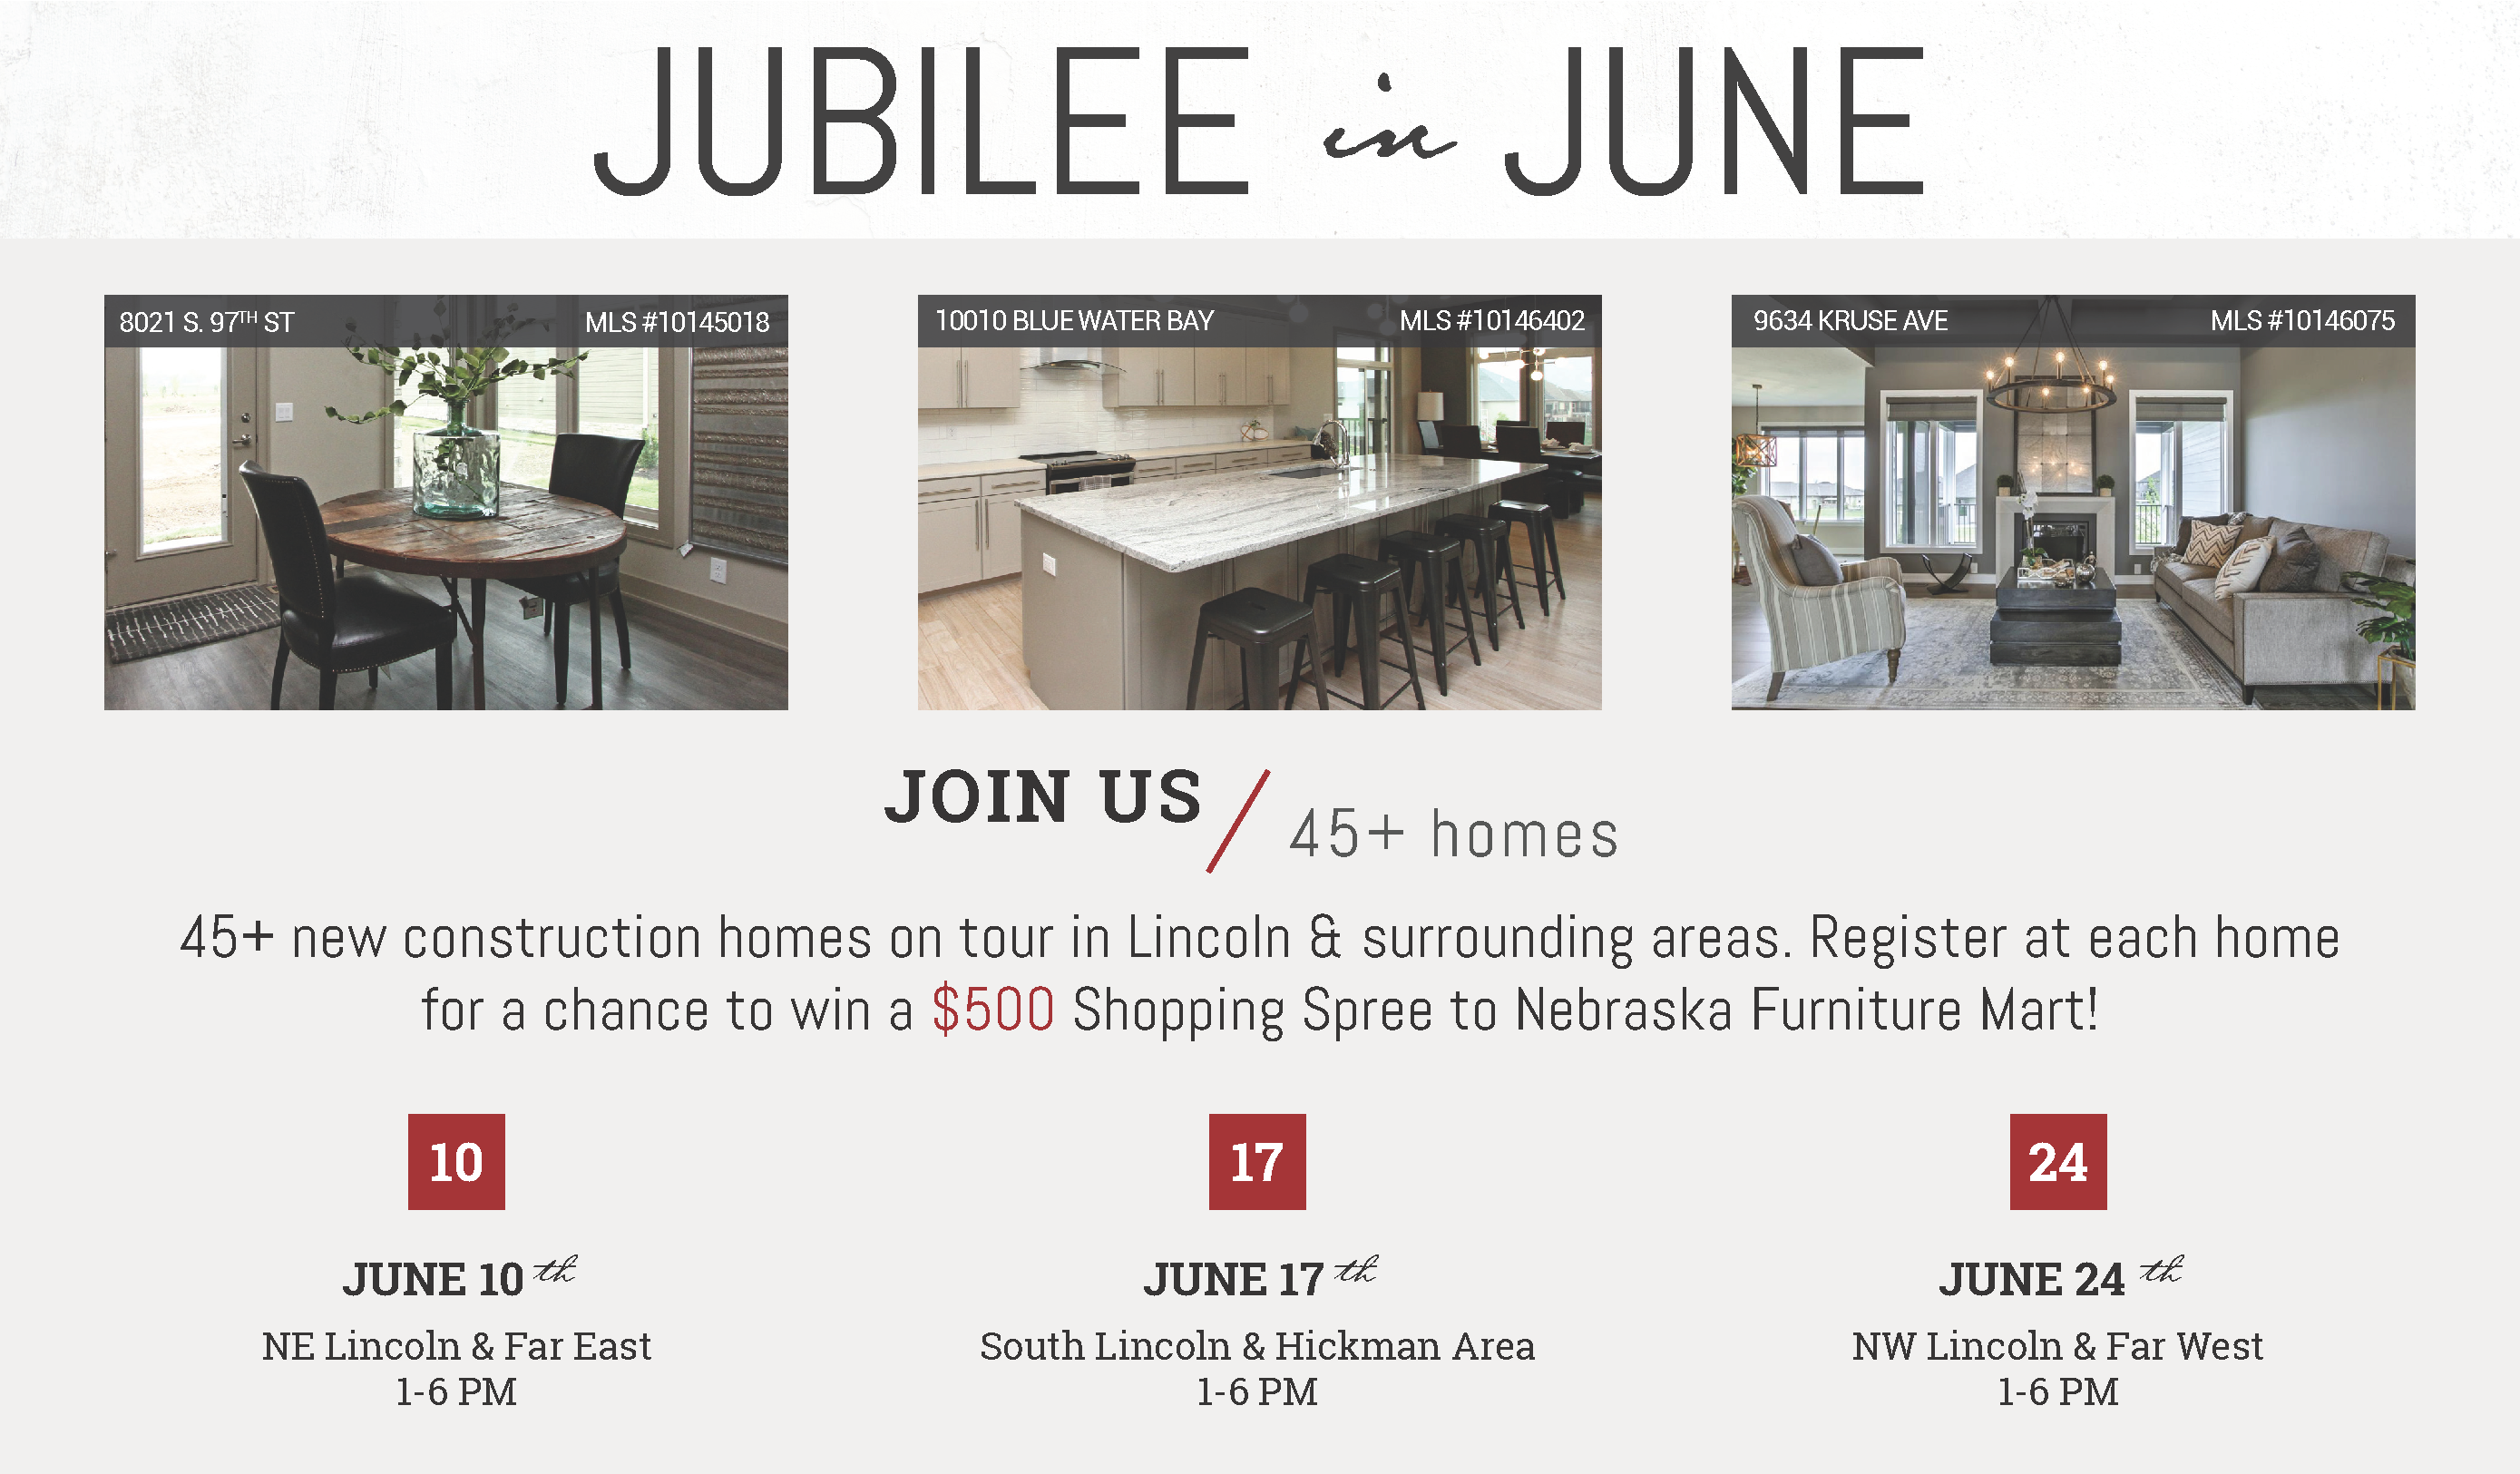 Spring Jubilee of Homes 2018. 45+ new construction homes on tour in Lincoln & surrounding areas. Register at each home for a chance to win a $500 Shopping Spree at Nebraska Furniture Mart! Tour dates June 10th (NE Lincoln & Far East - 1 to 6pm), June 17th (South Lincoln & Hickman Area - 1 to 6pm), June 10th (NW Lincoln & Far West - 1 to 6pm).